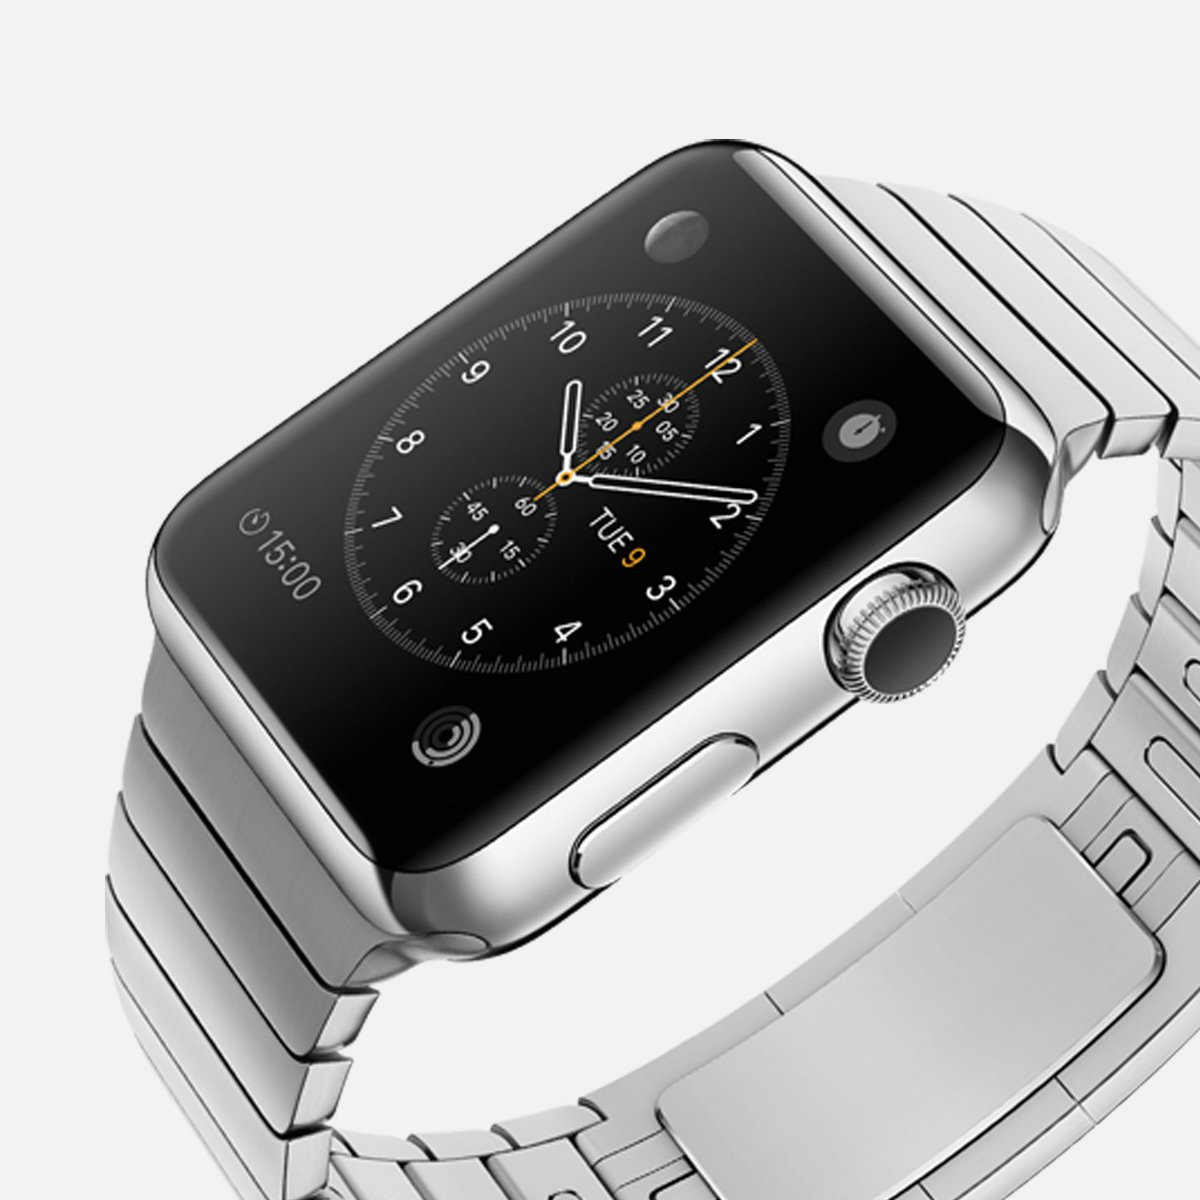 Apple Invites Devs To Cupertino To Finish Apple Watch Apps